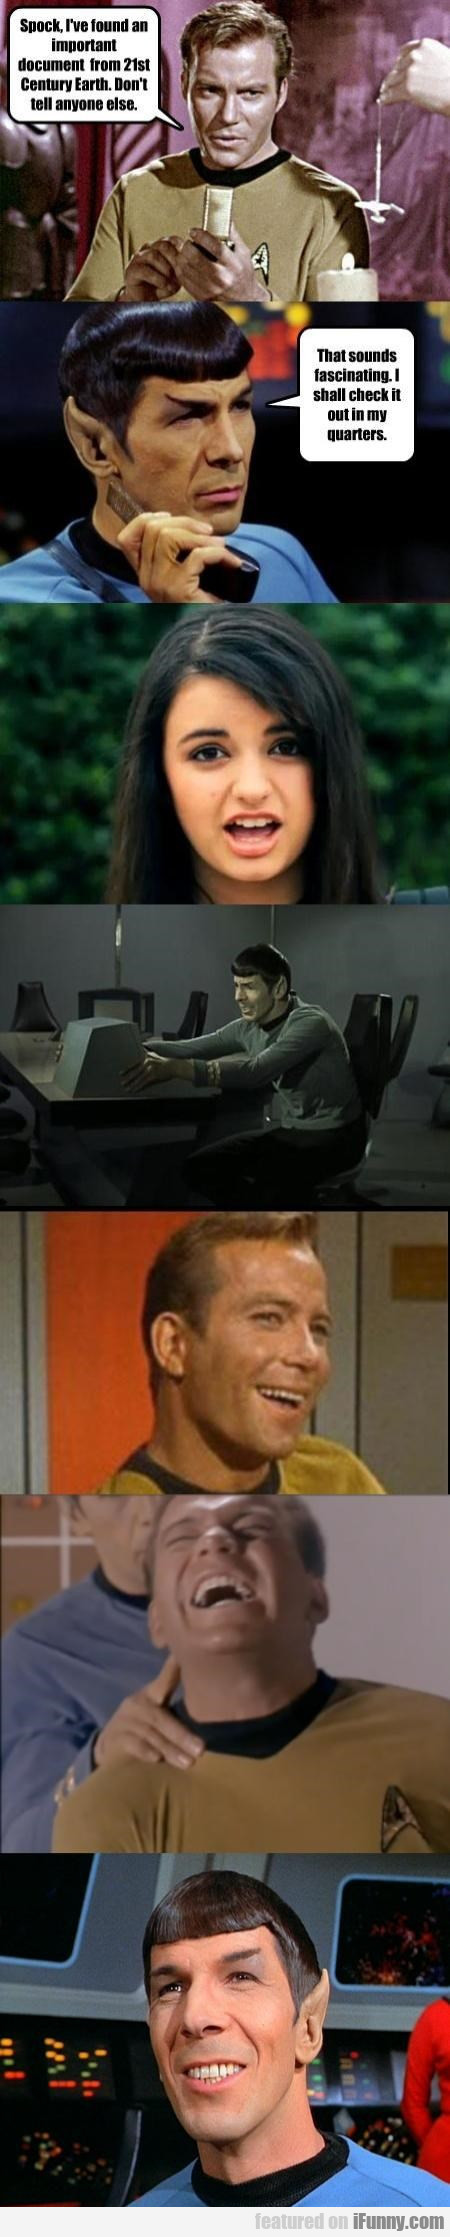 Spock, I've Found An Important Document From 21st